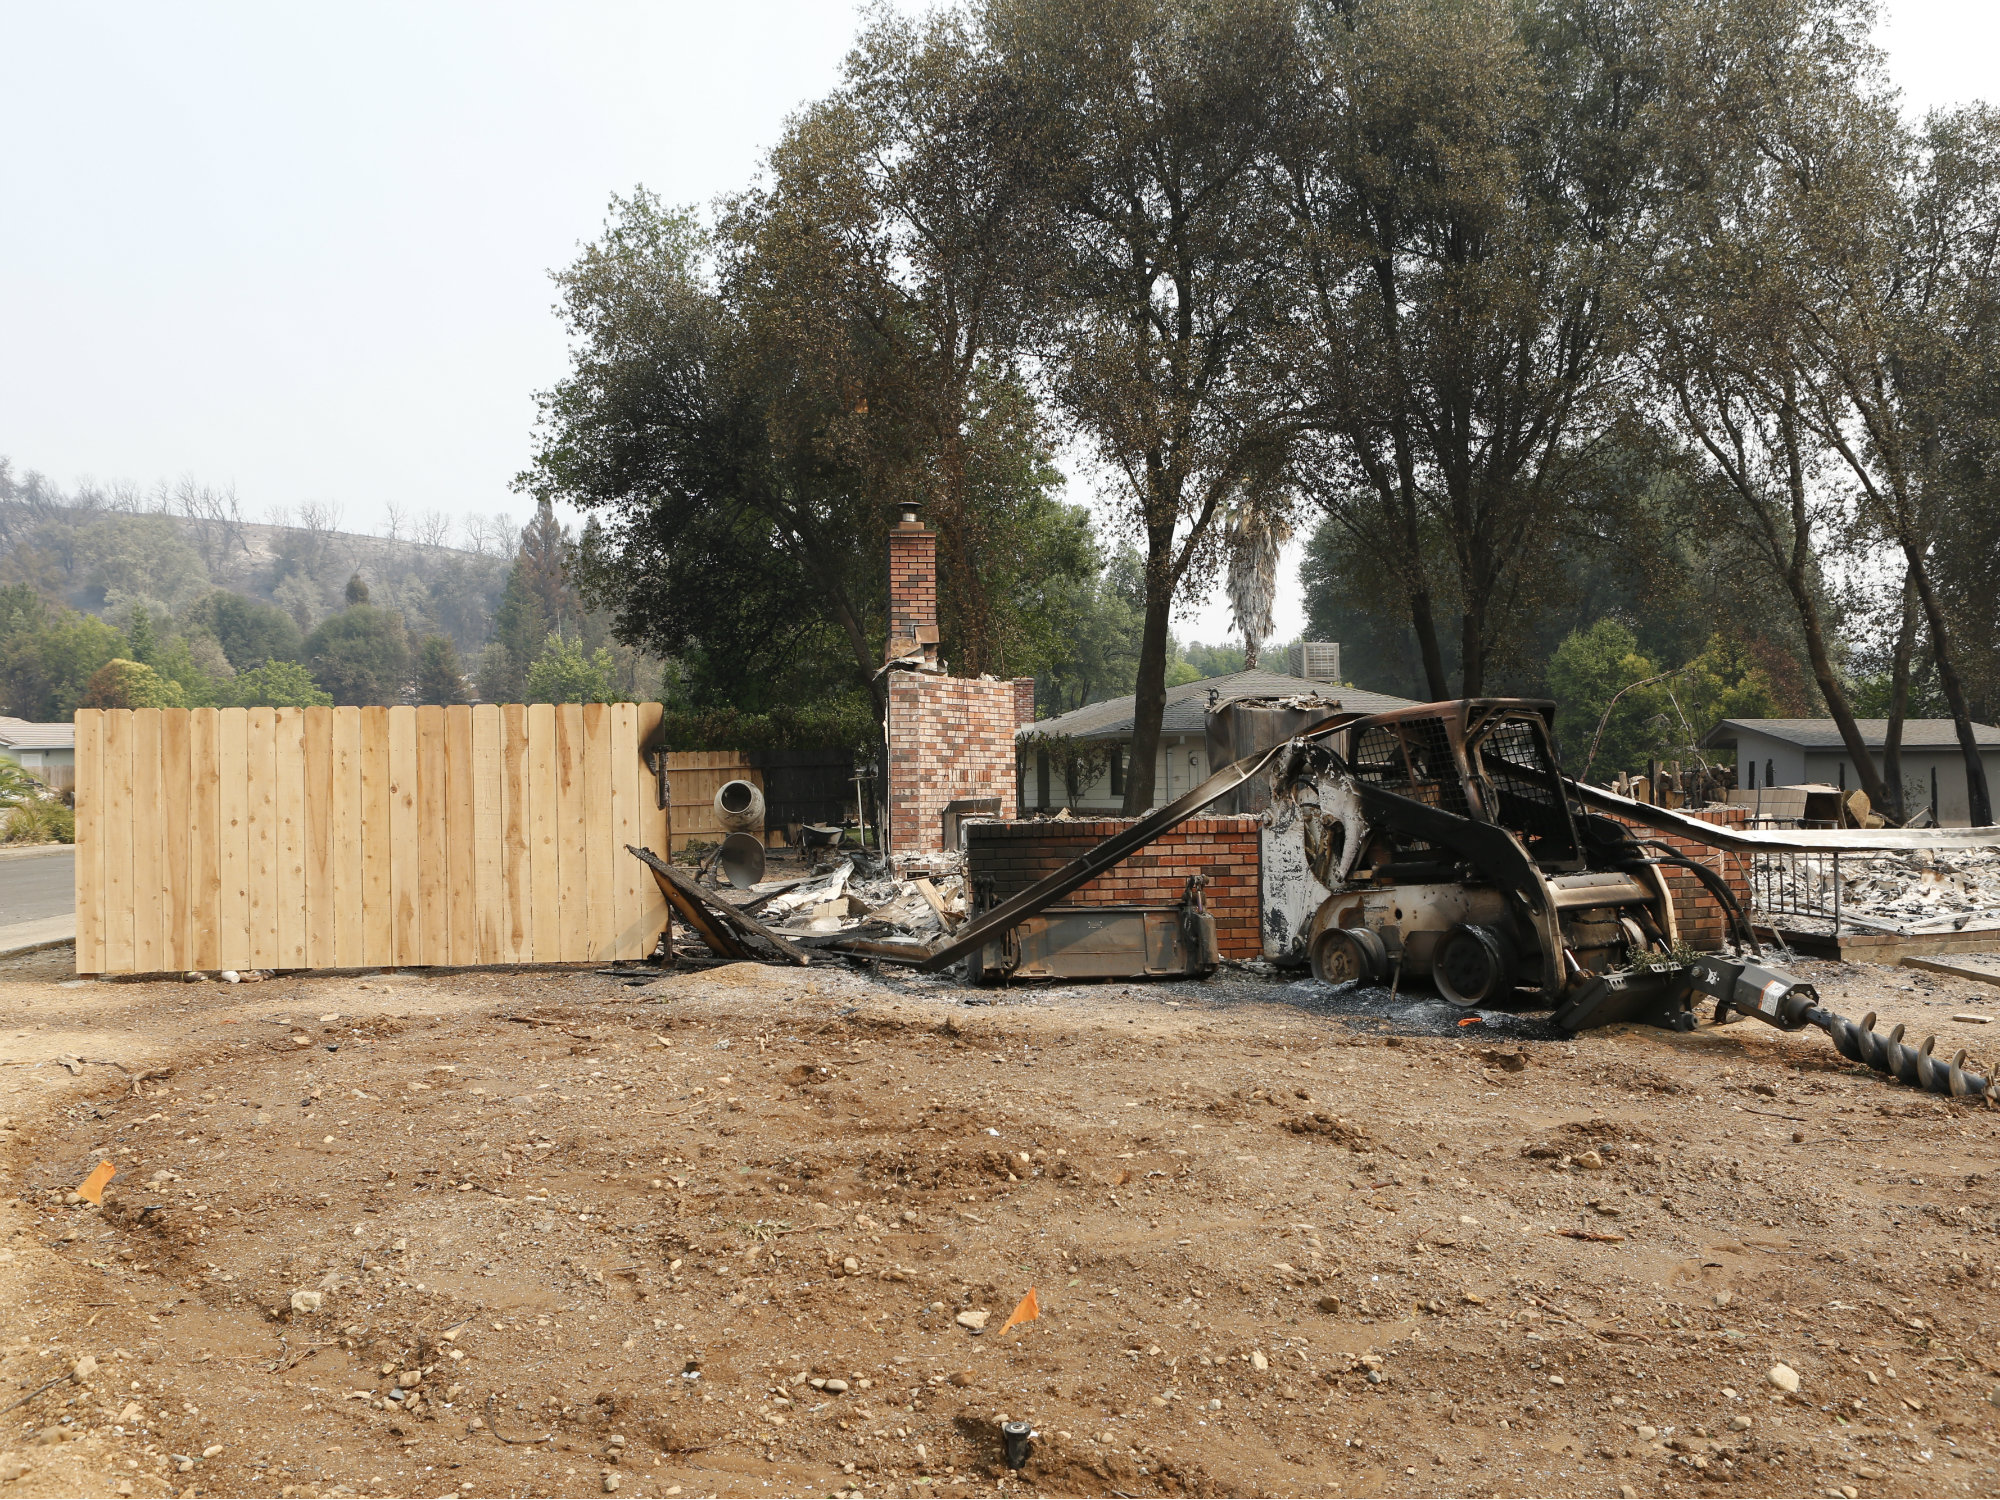 072818Carr Fire Destroyed House 4-BJ-p